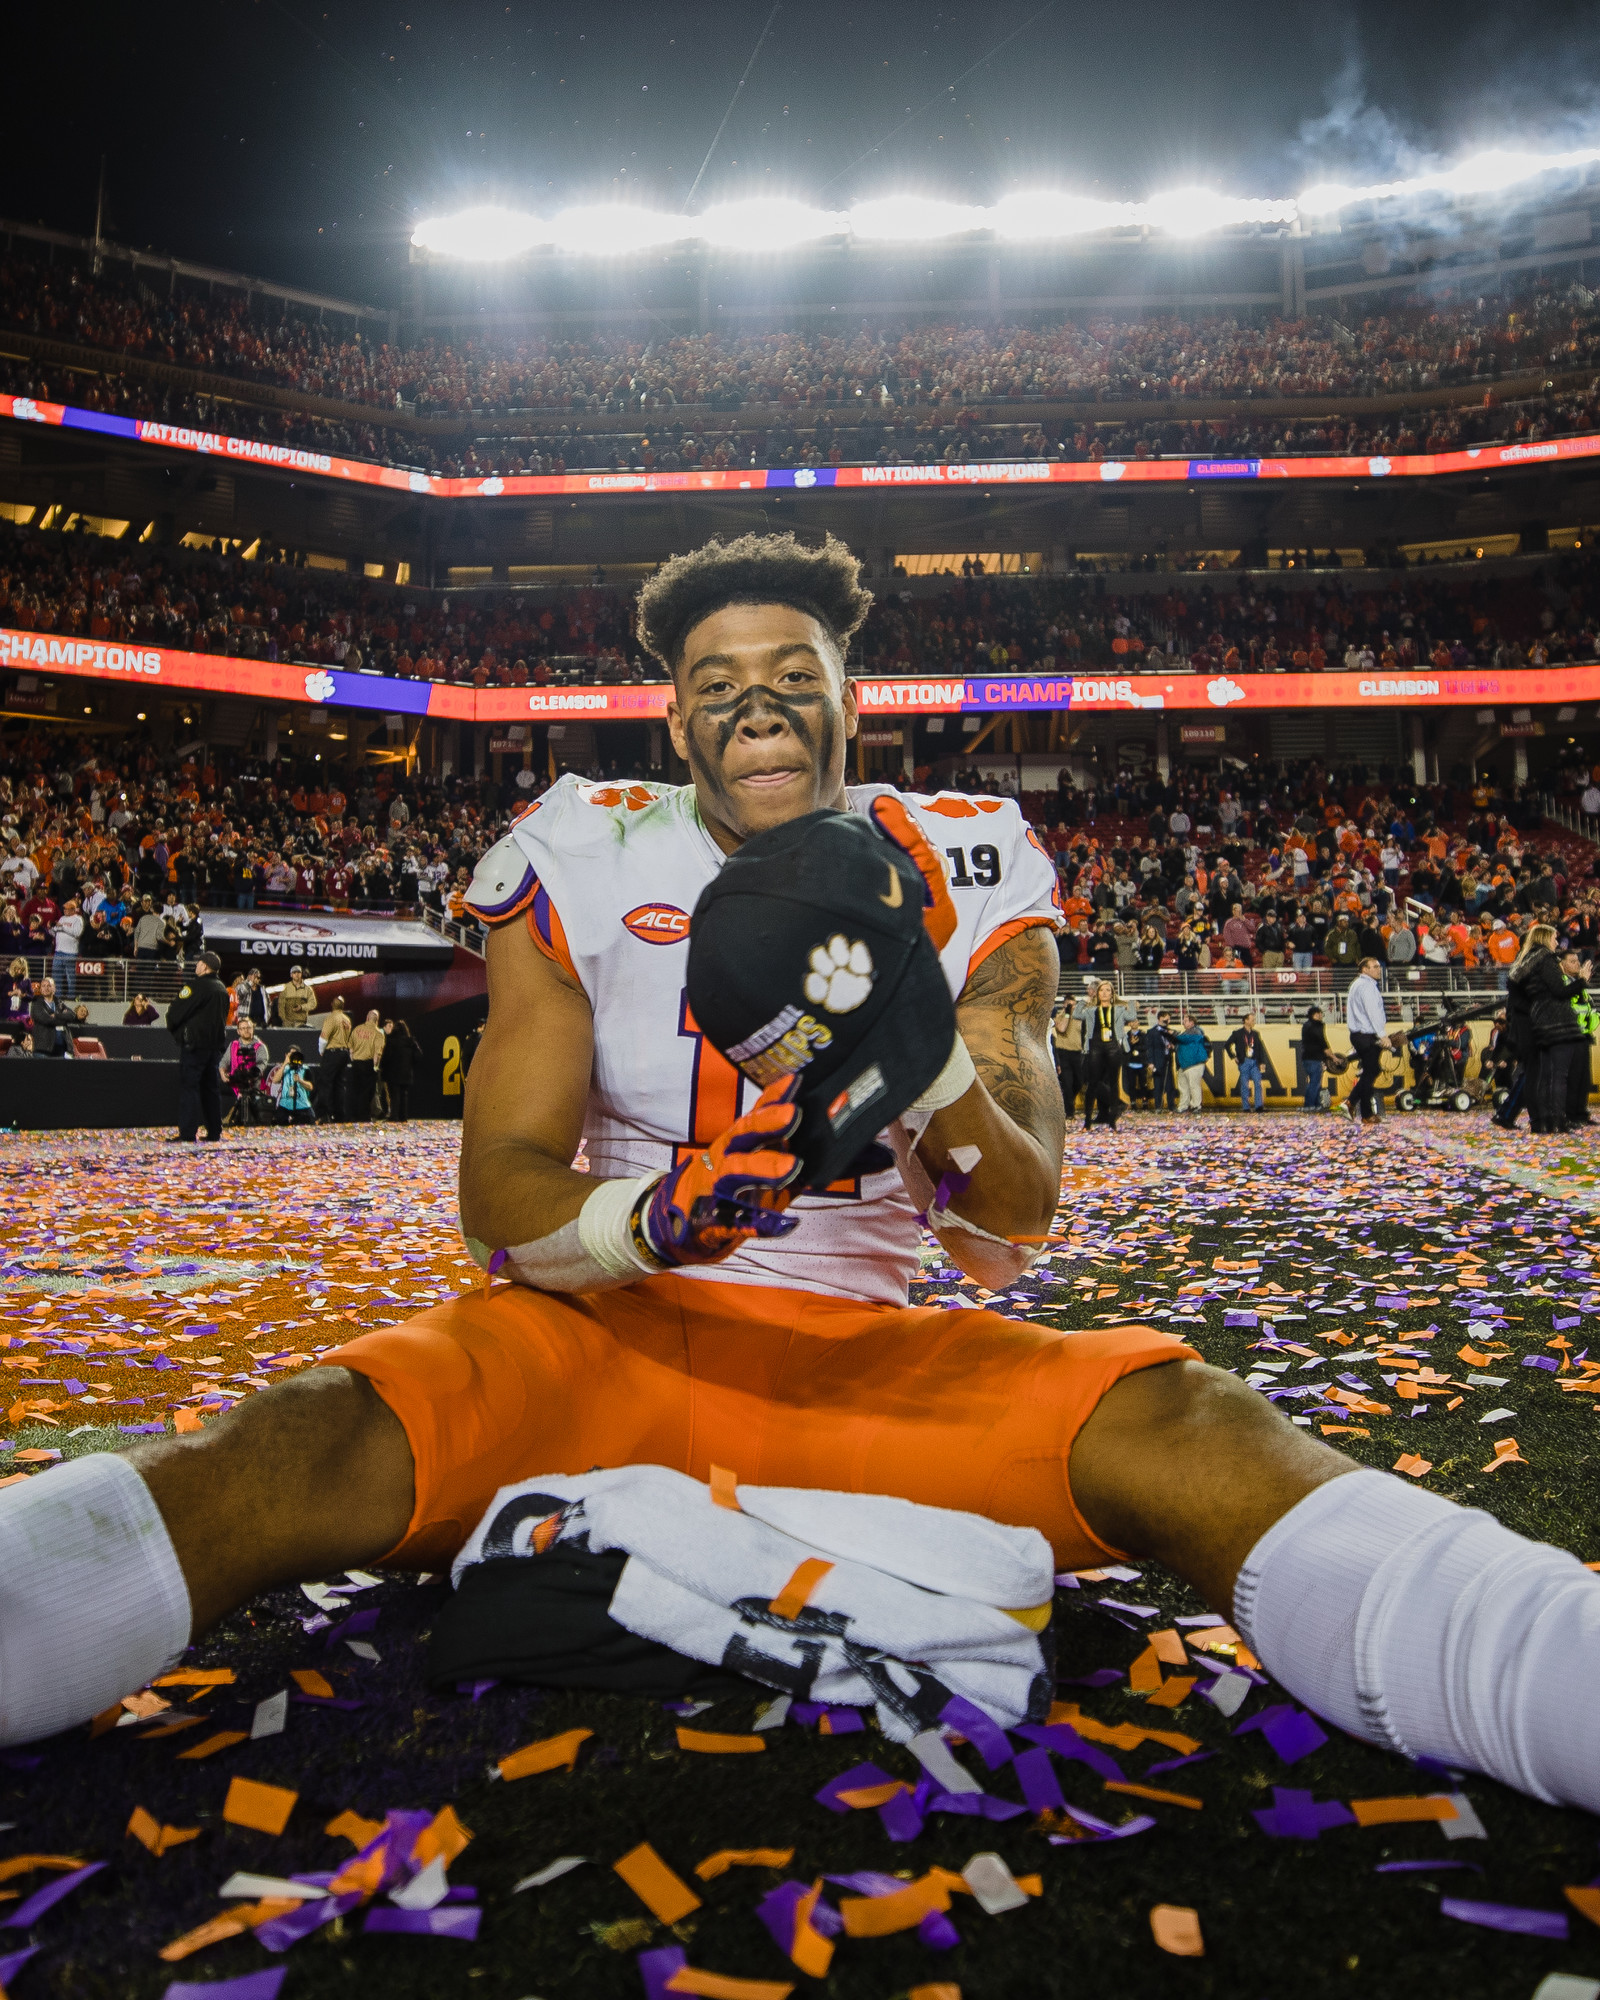 Clemson safety Isaiah Simmons celebrates at Levi's Stadium in Santa Clara, California, on Monday, Jan. 7 after routing Alabama 44-16 to win the 2019 CFP National Championship.